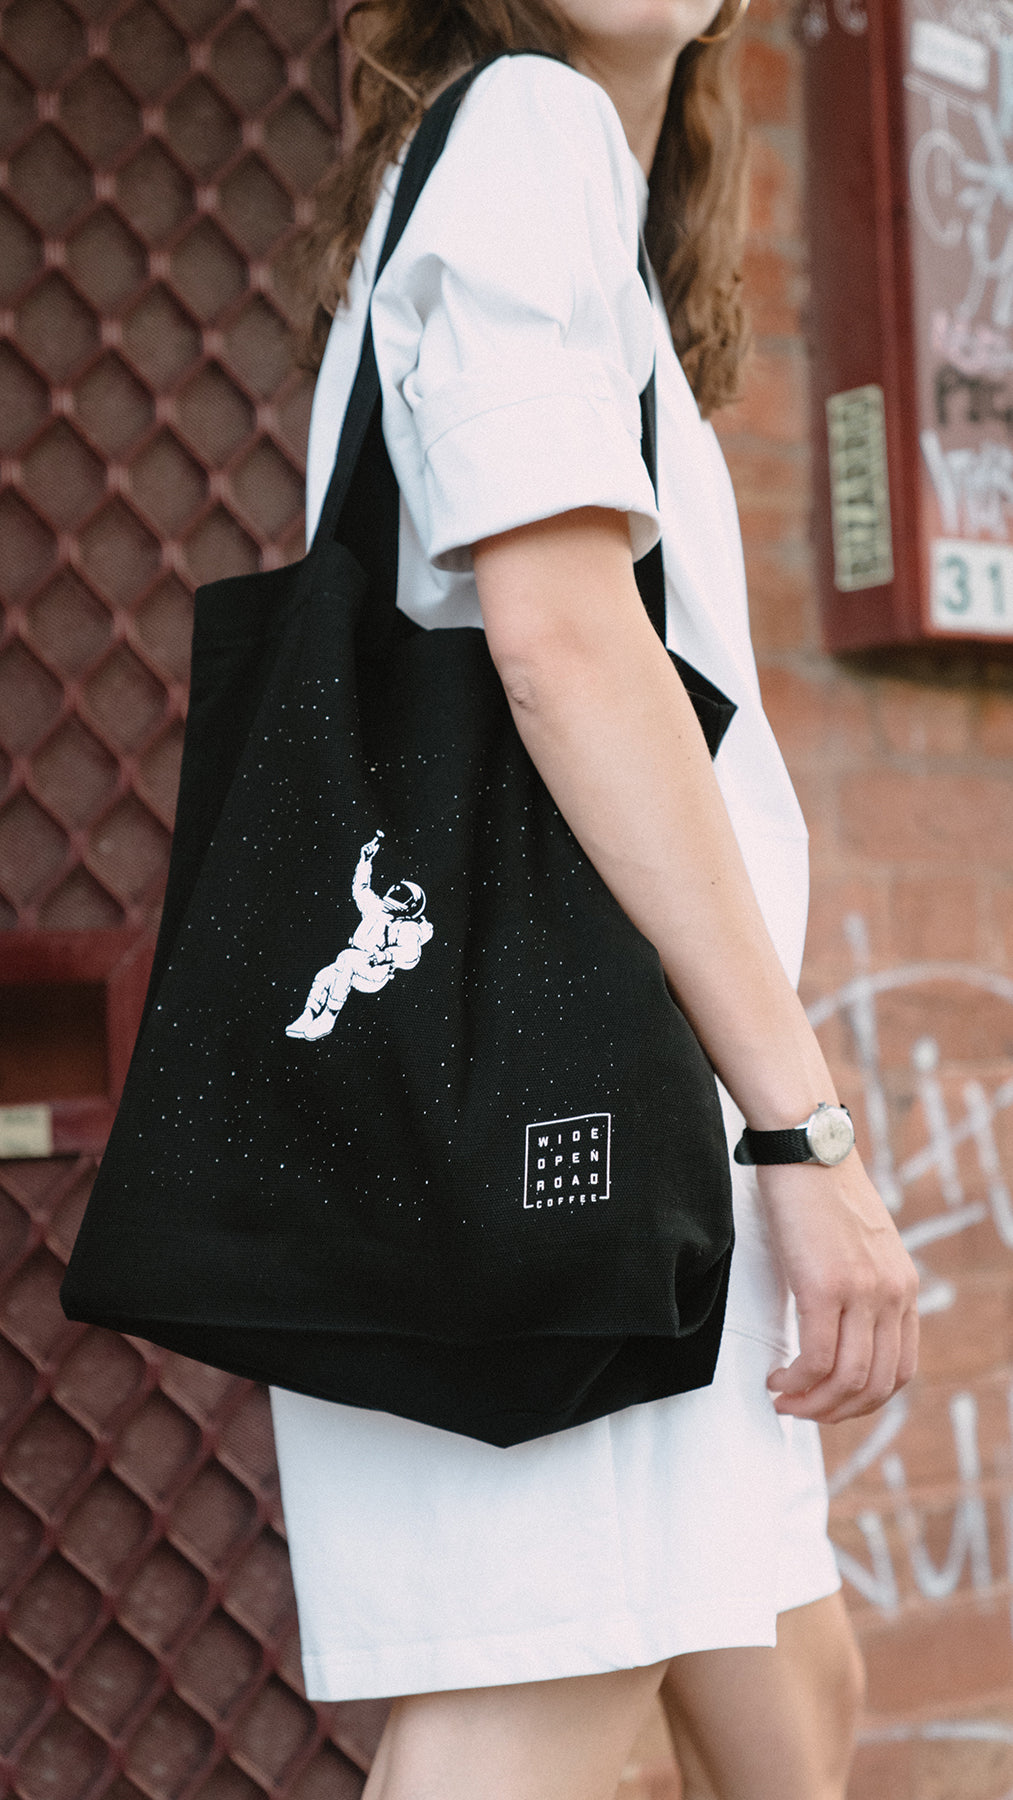 'EXPLORER' TOTE BAG